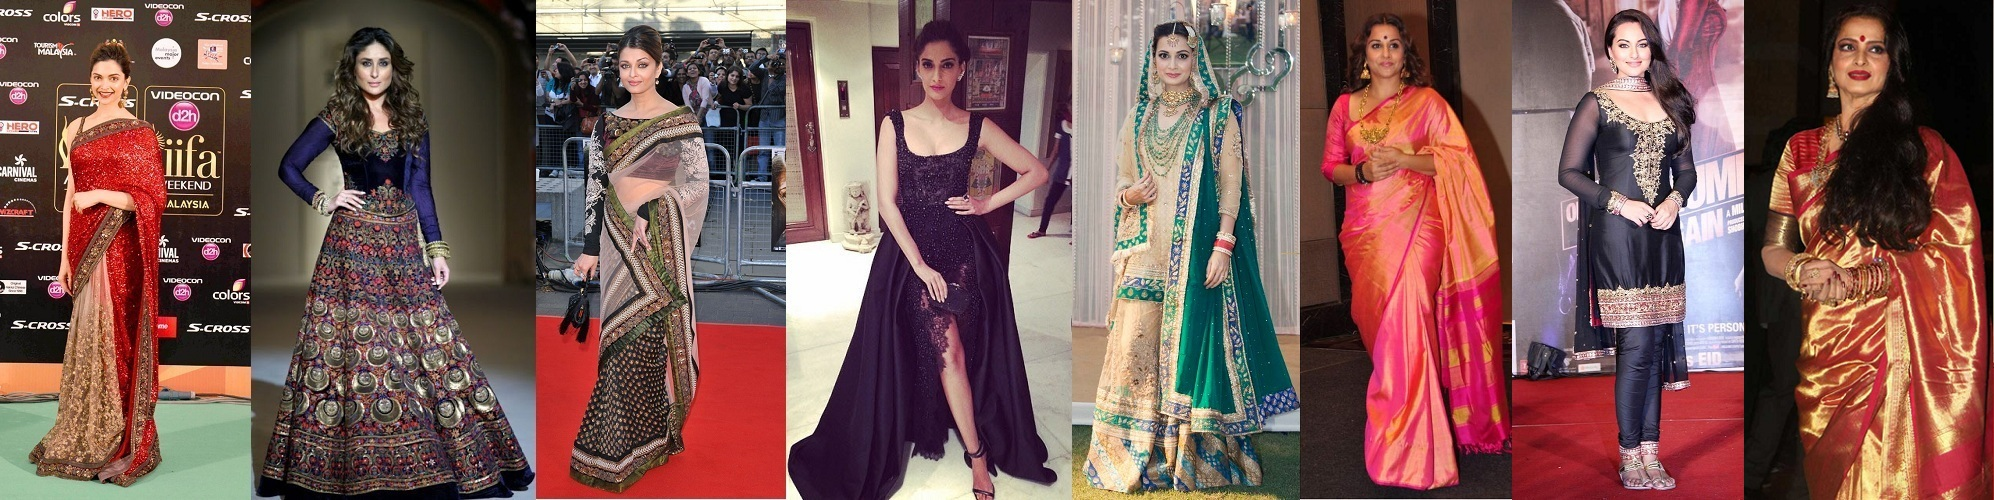 Bollywood Actresses in Indian Wear